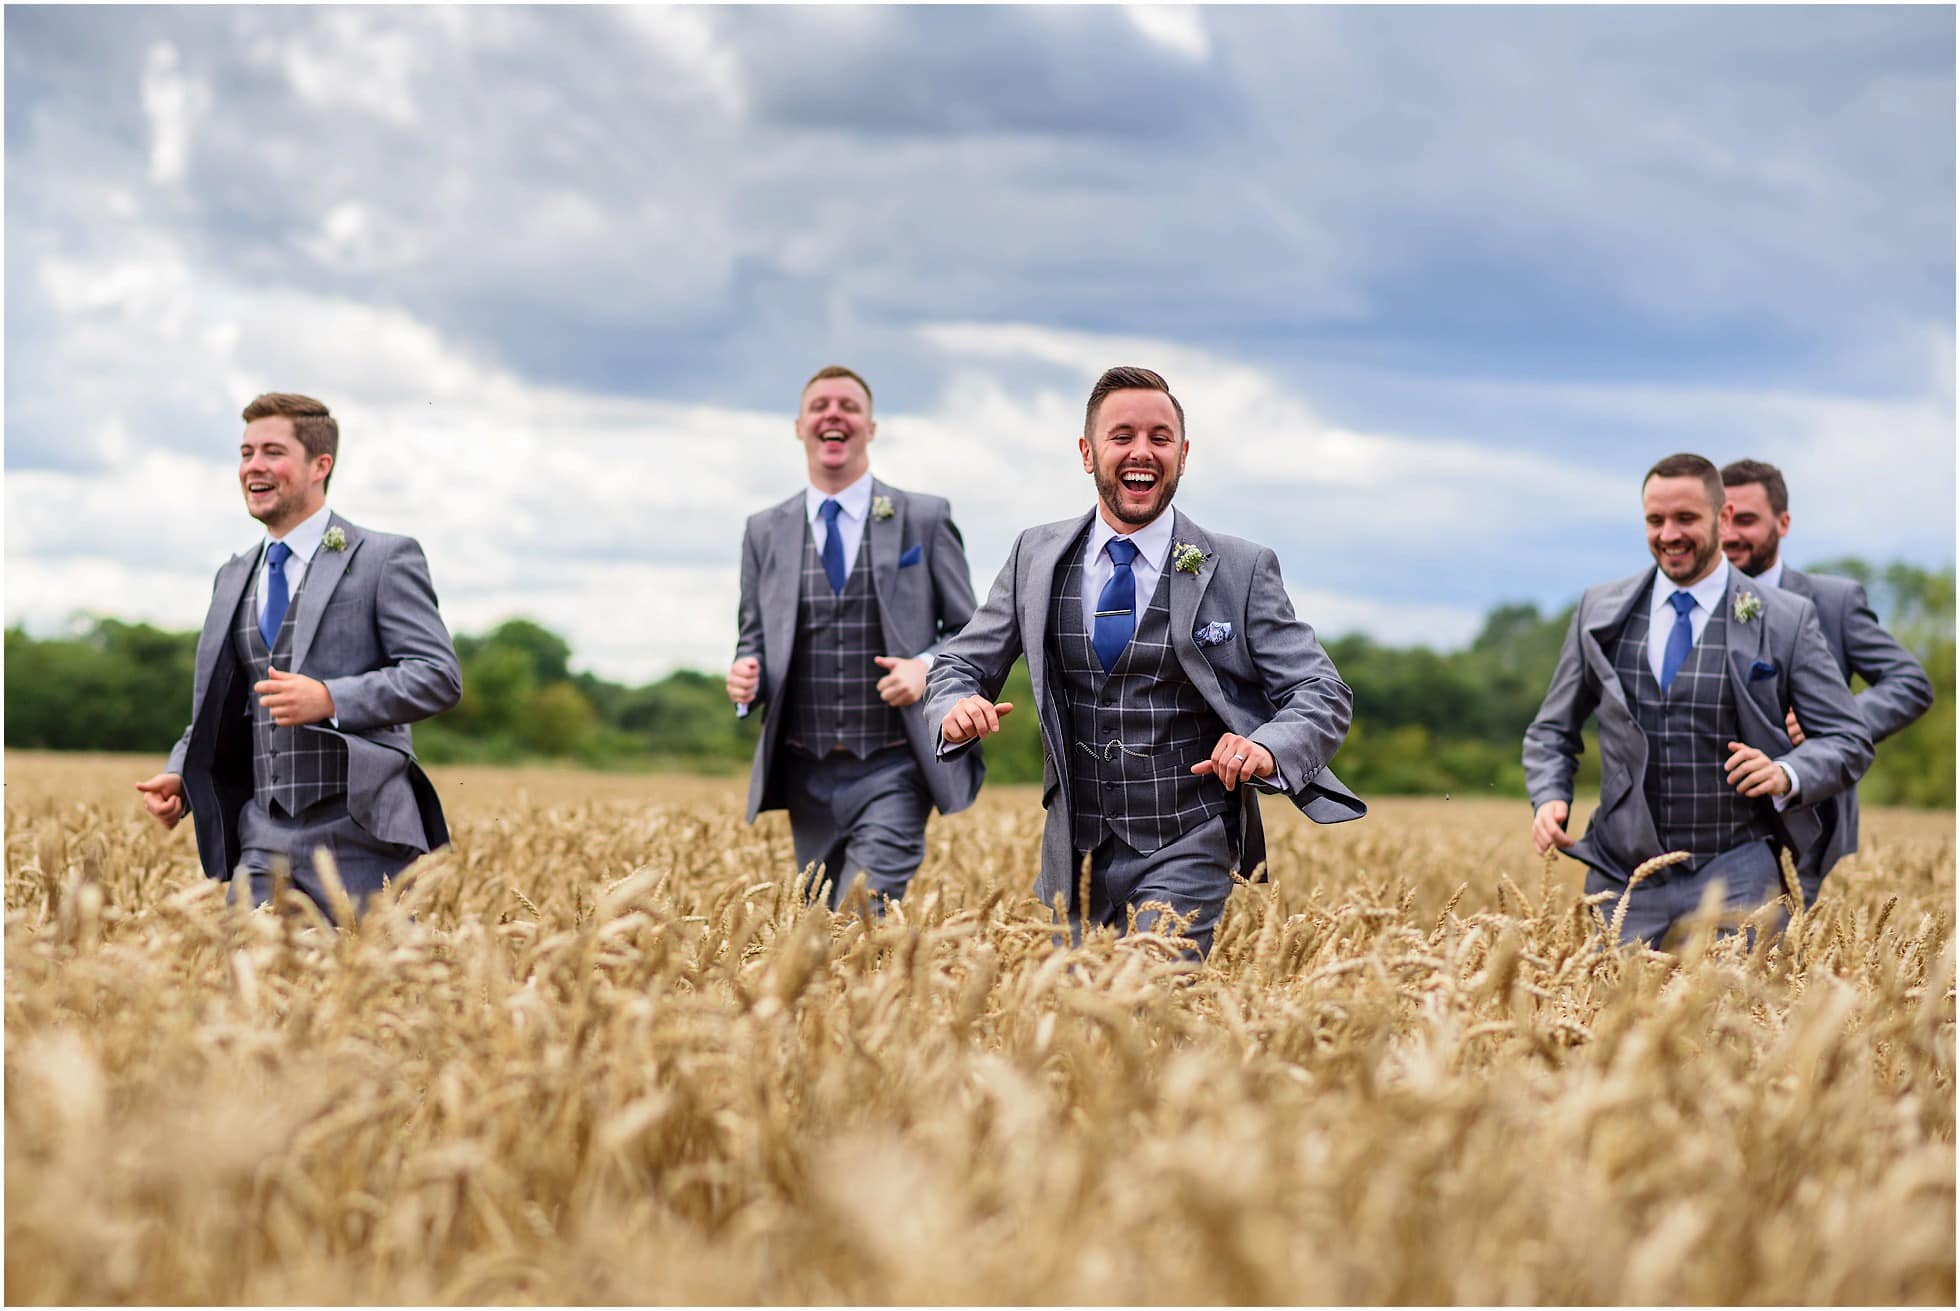 Groomsmen running in a wheat field